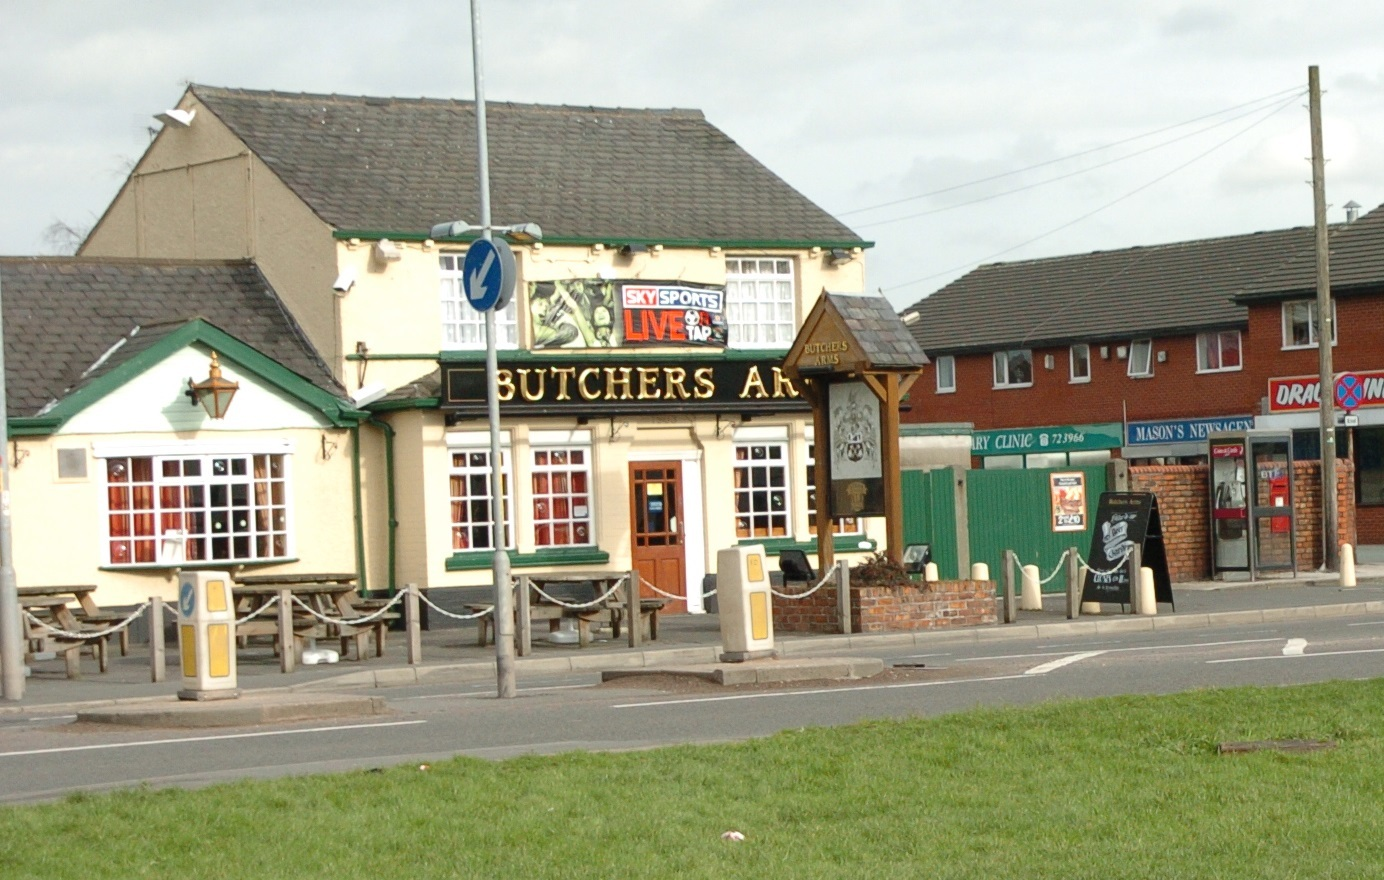 The Butchers Arms is one of four Greene King pubs in Warrington giving away free pints of beer during the World Cup.